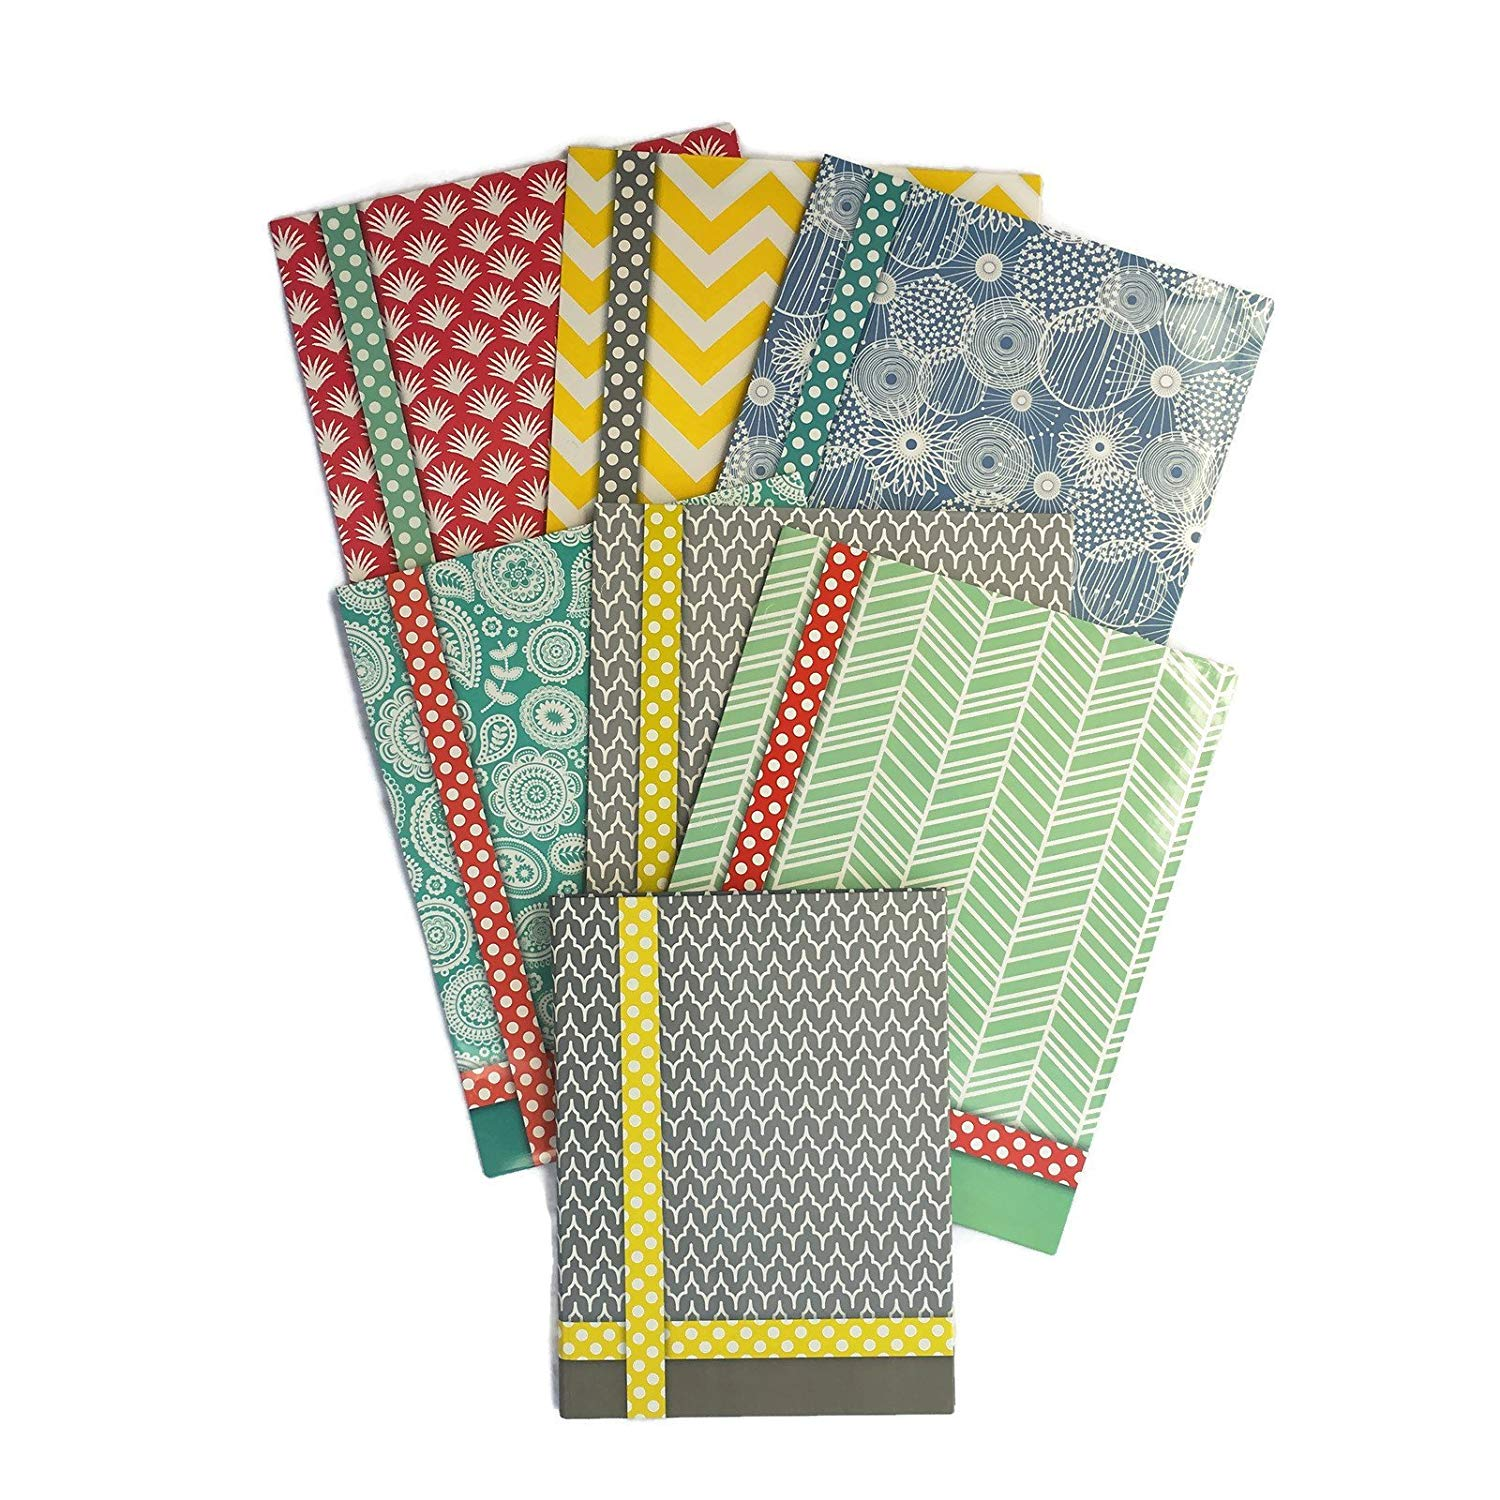 Colorful Pattern Design Belle School Supply Bundle: 7 Items: Seven Assorted Belle School Subject Folders, Plus One Matching Hardcover College Ruled Composition Notebook